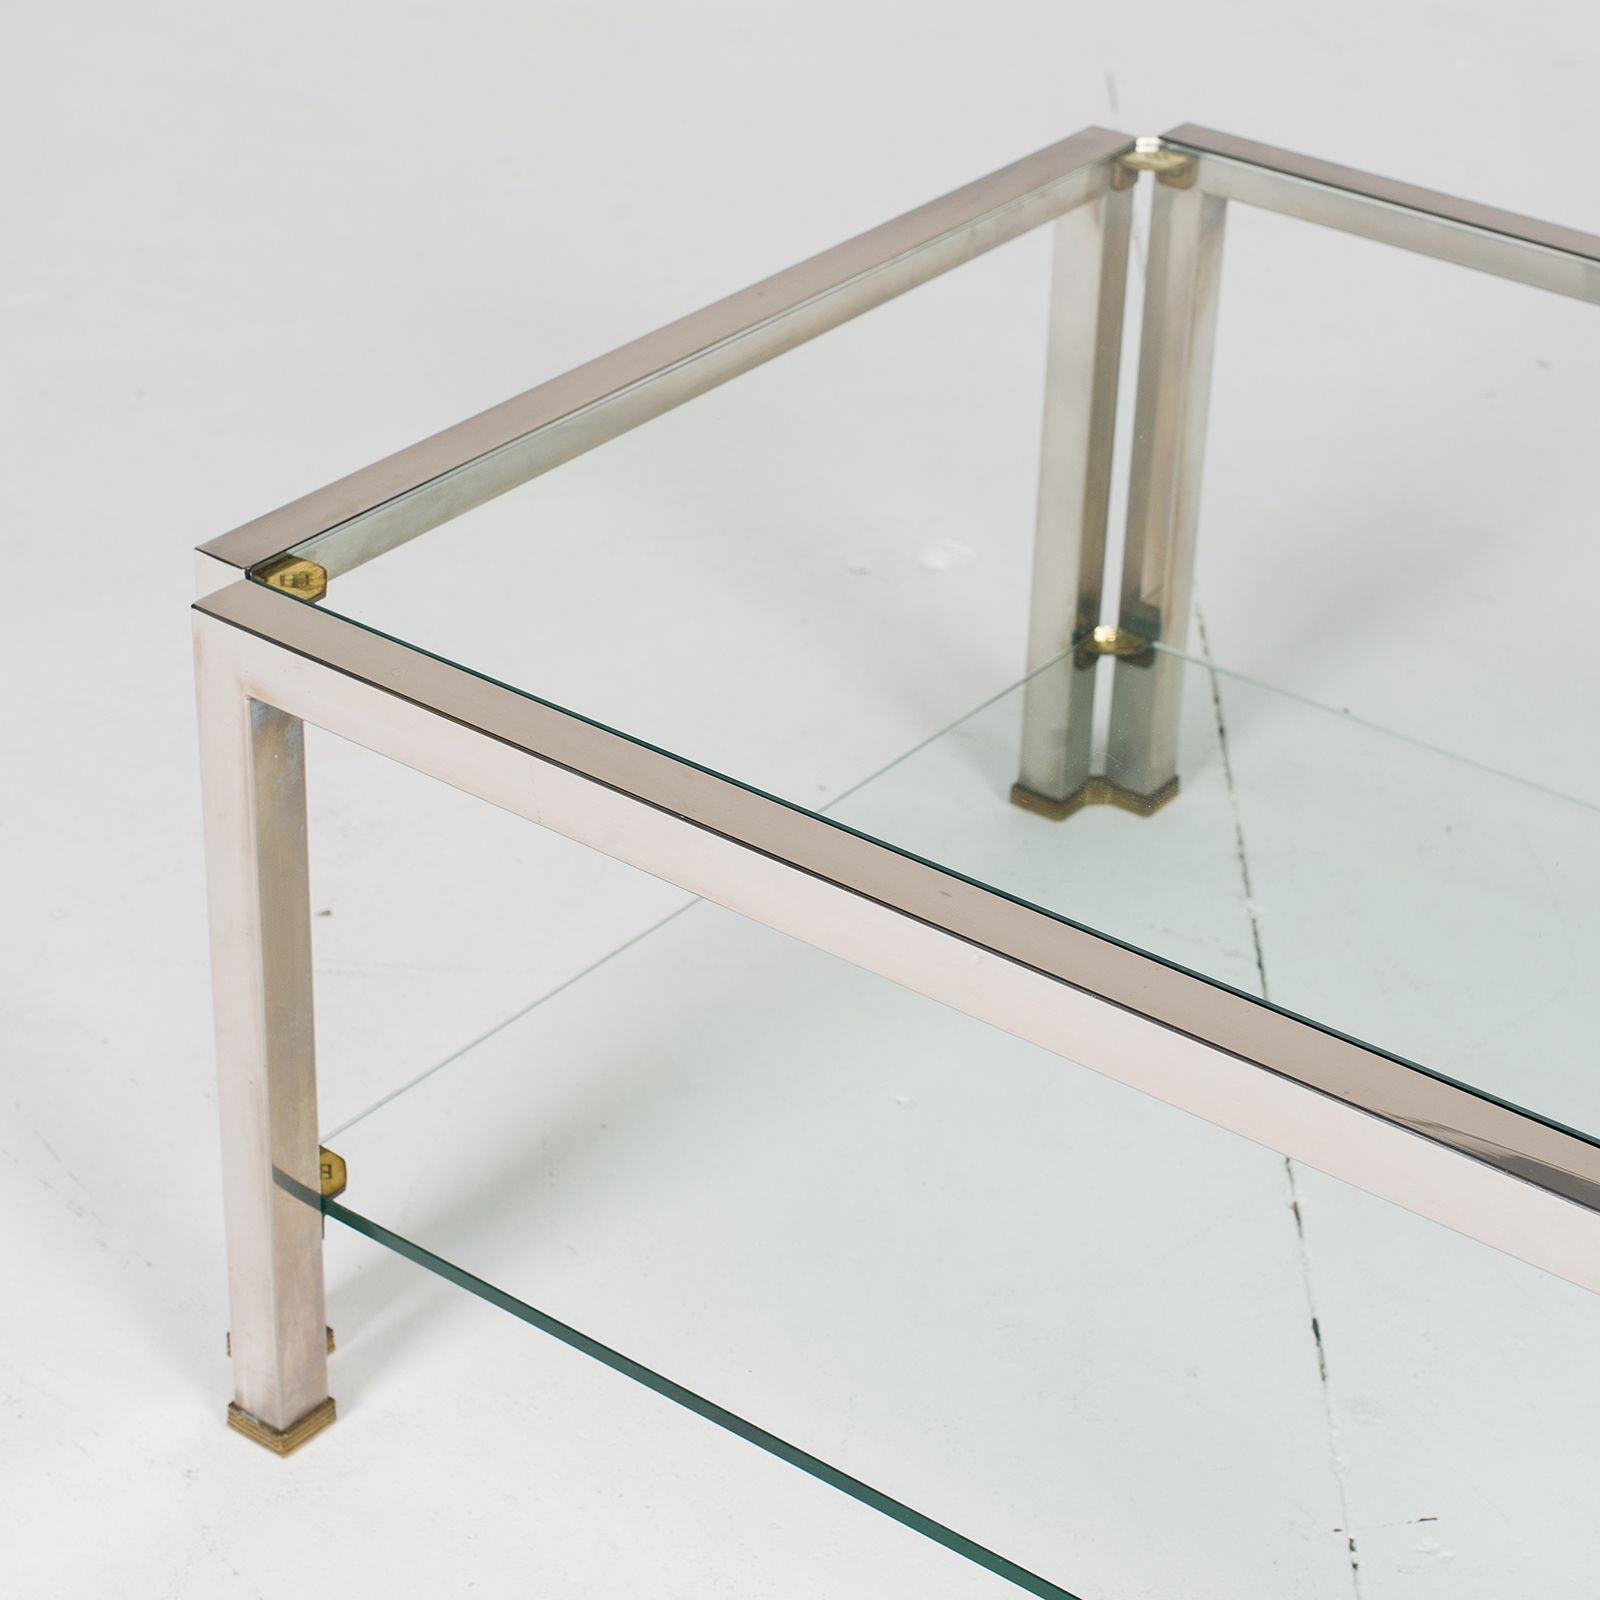 Coffee Table By Peter Ghyczy, 1970s, The Netherlands 2993